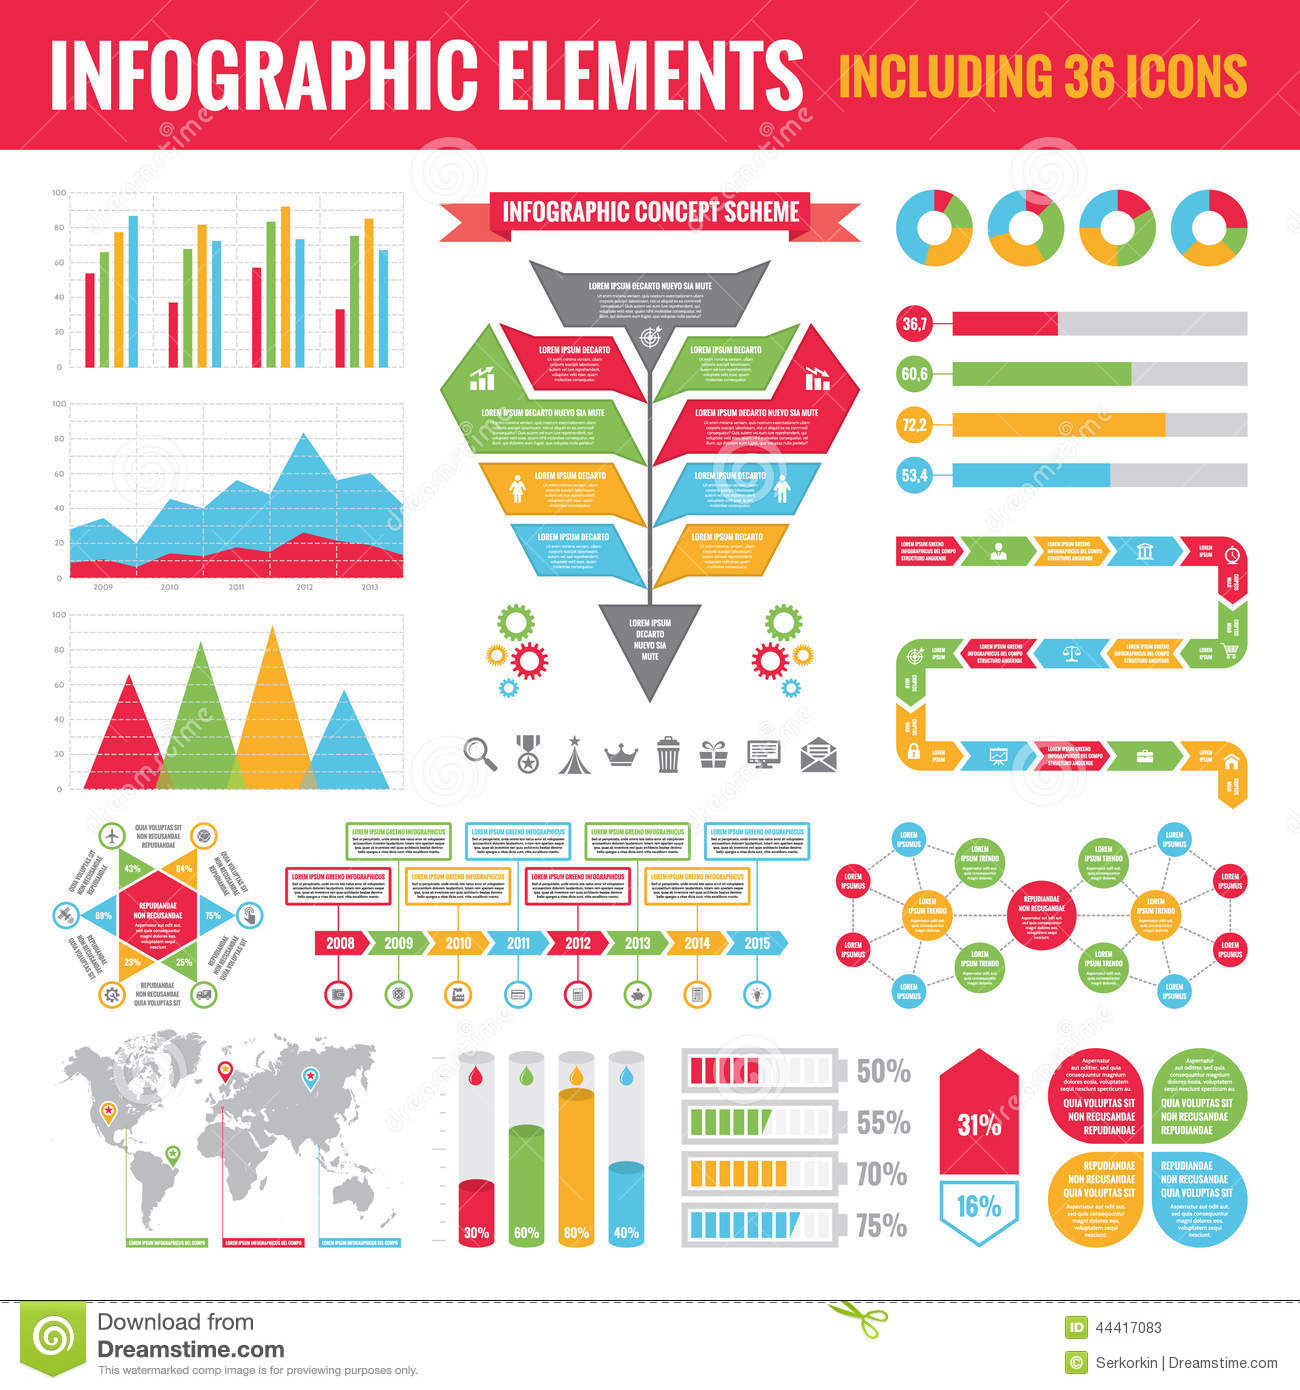 Set of Infographic Elements (including 36 icons) - Vector Concept Illustration